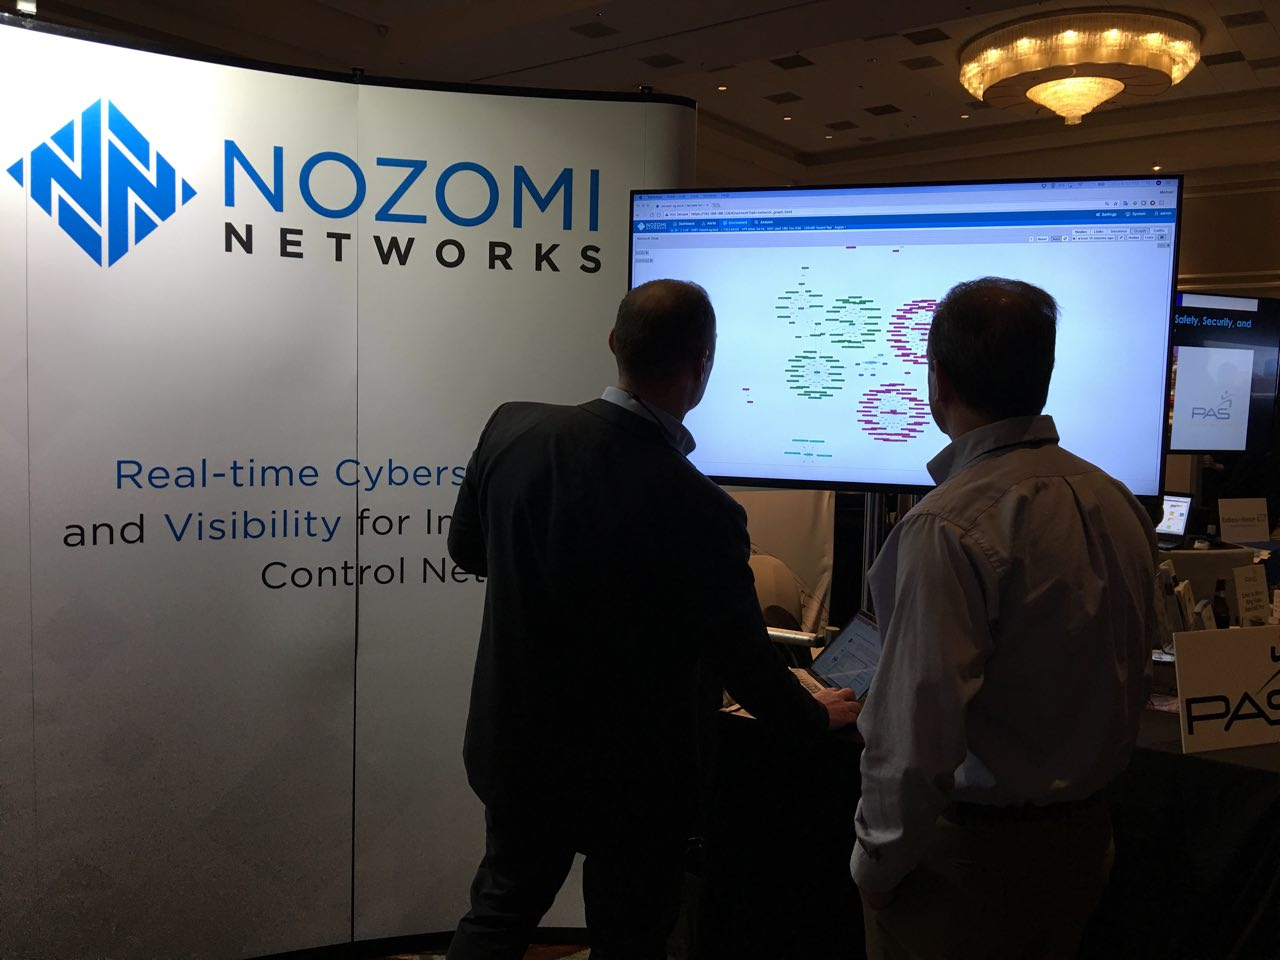 ARC-Forum-Nozomi-Networks-Booth